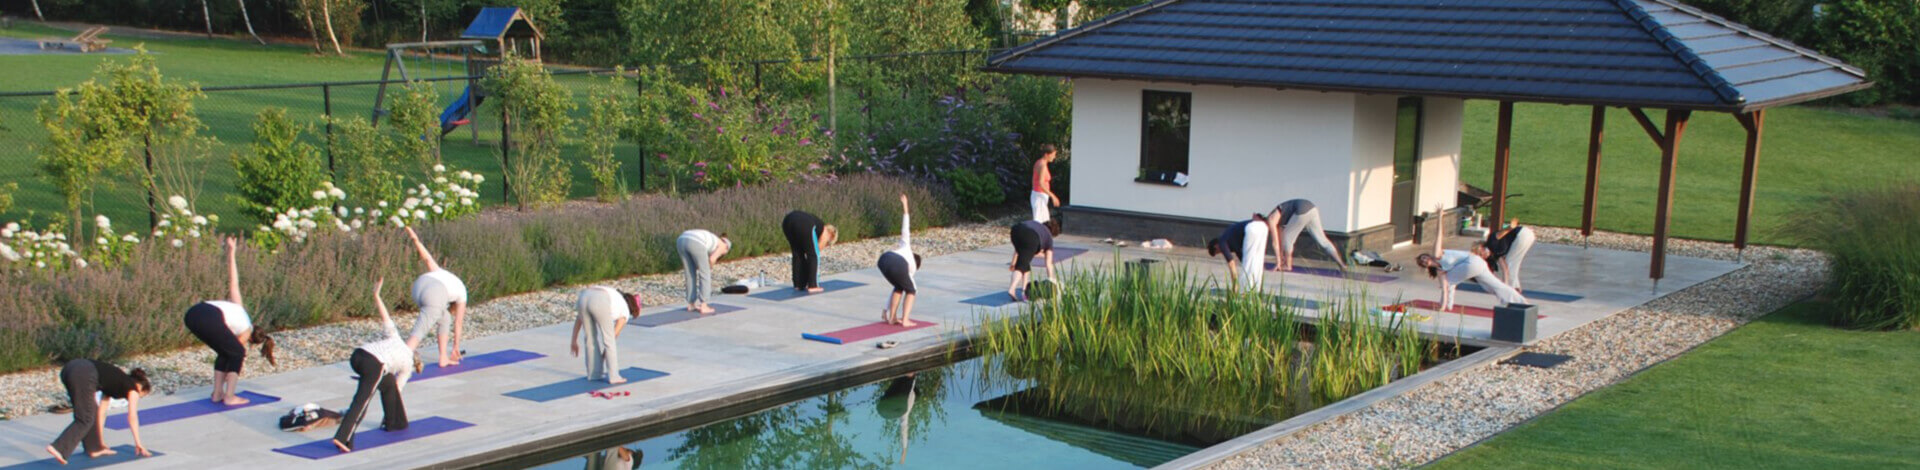 yoga-studio-almere-workshops